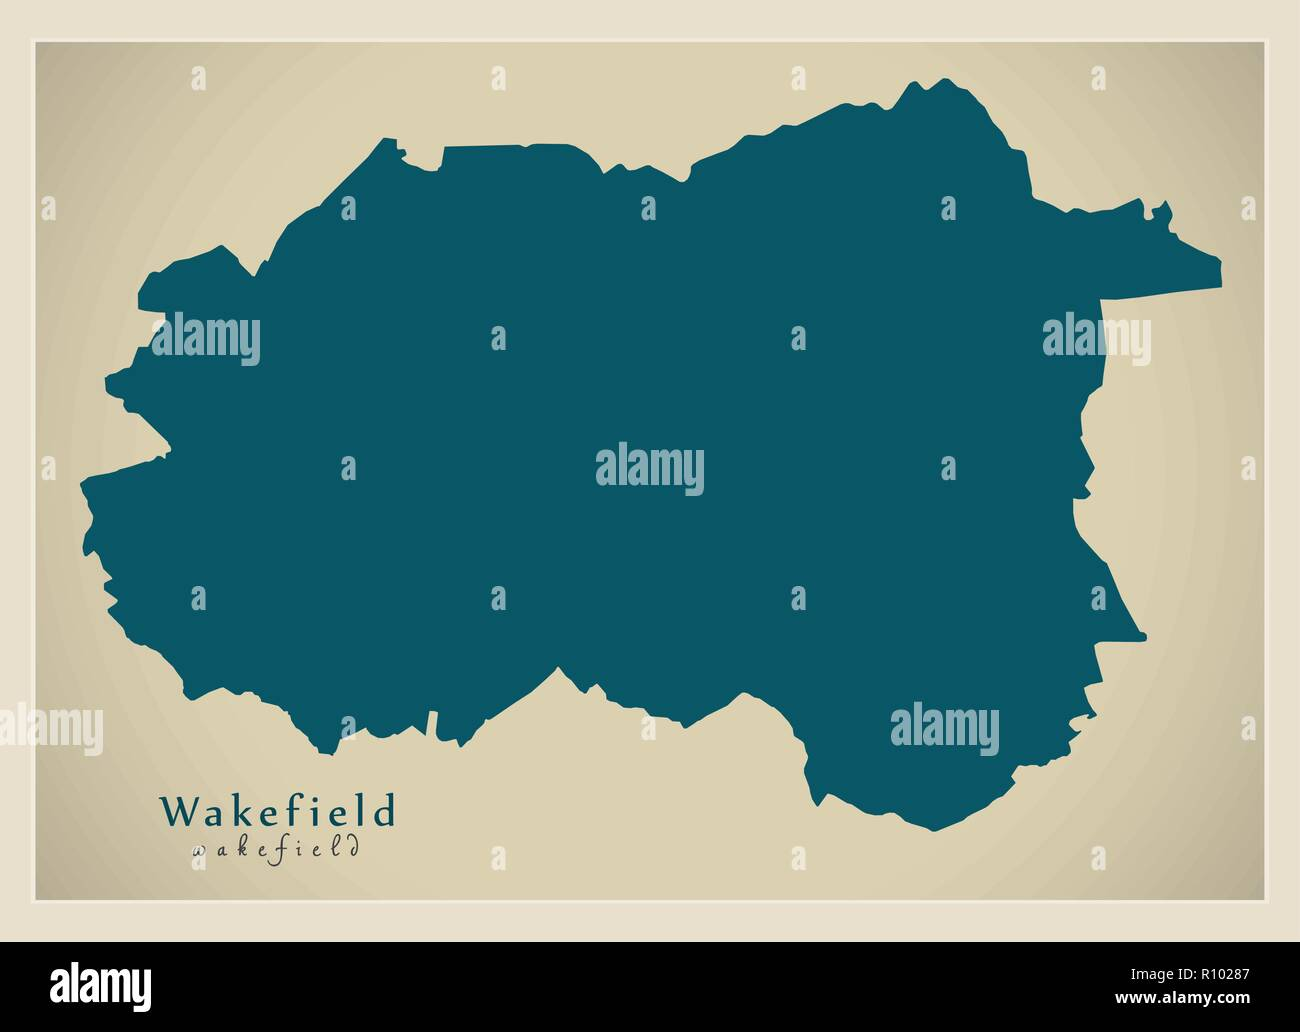 City Map Of England.Modern City Map Wakefield City Of England Uk Stock Vector Art